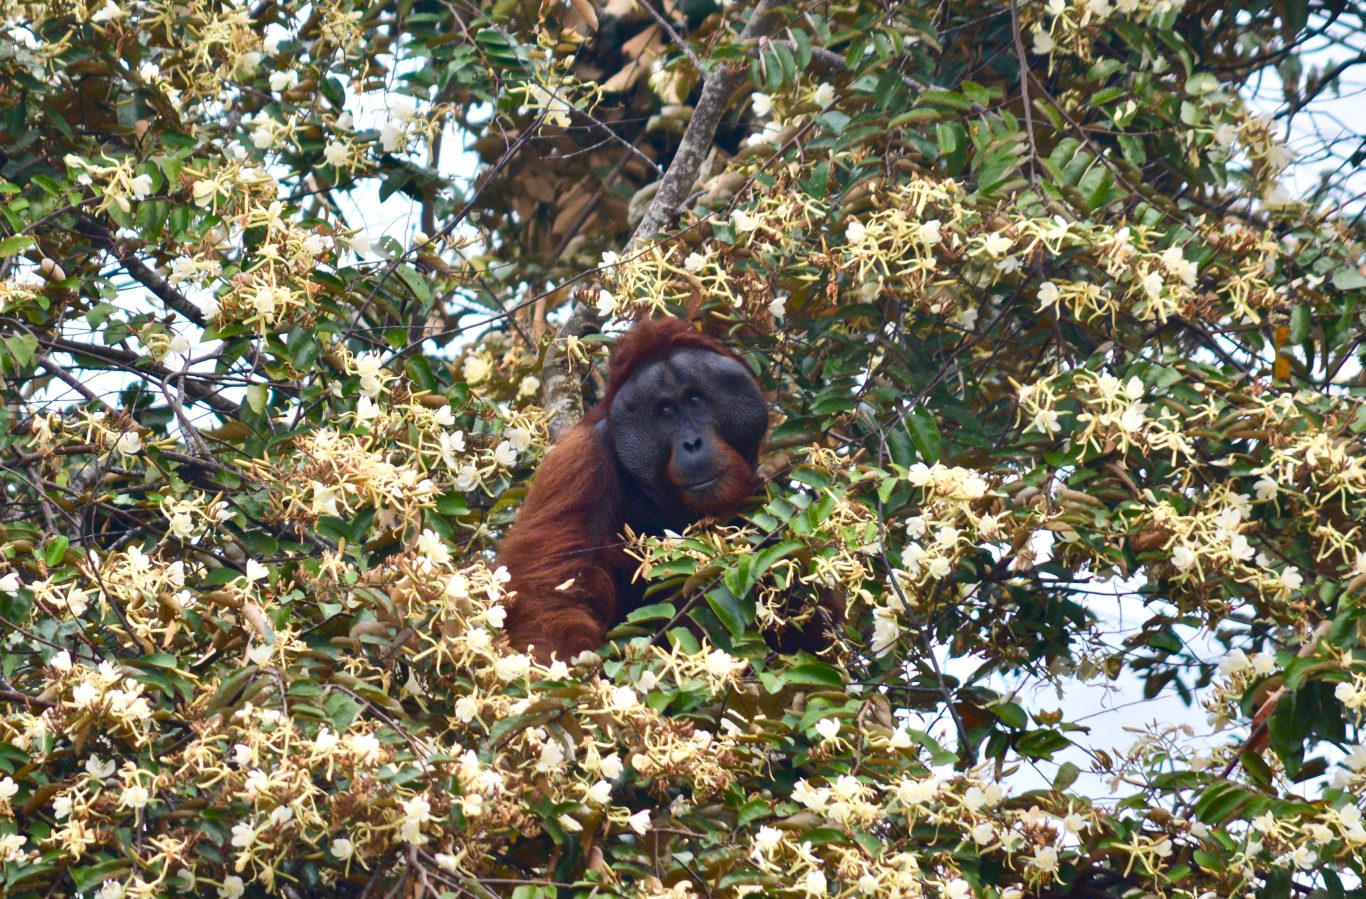 Male orangutan up in the tree